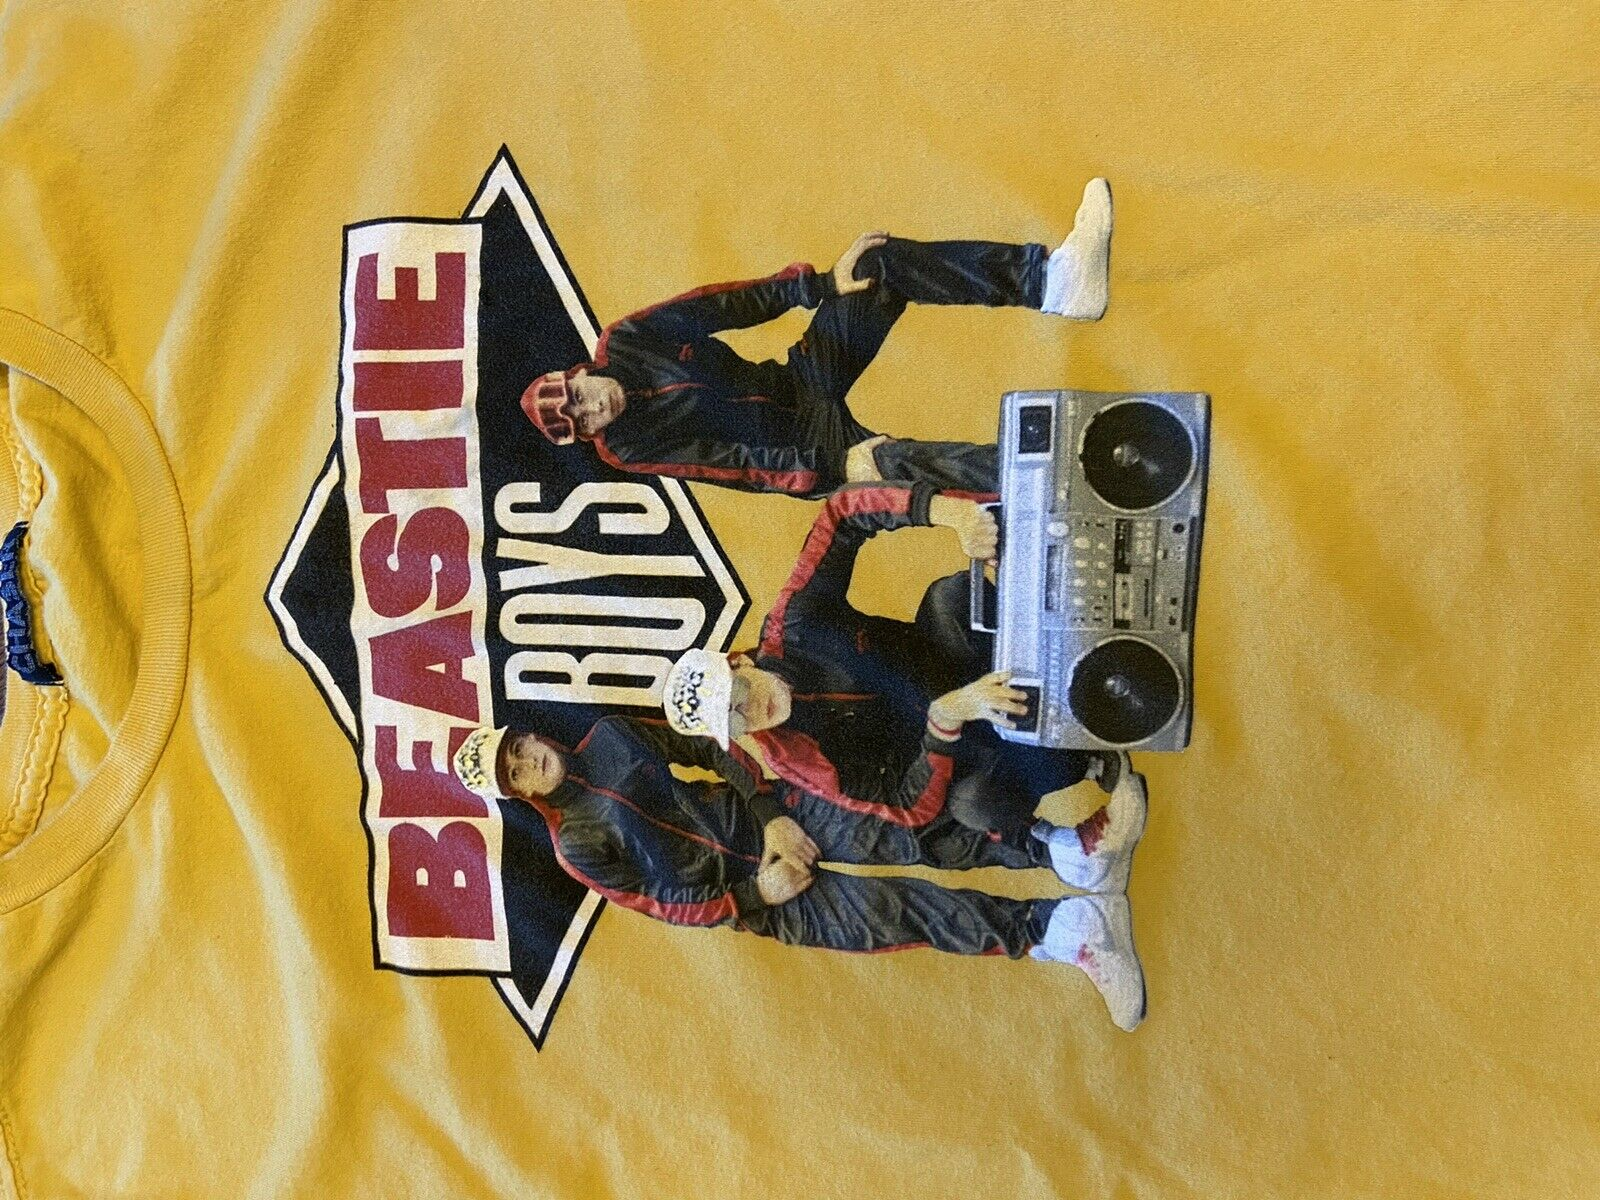 Beastie Boys Graphic Shirt Sz L - image 2